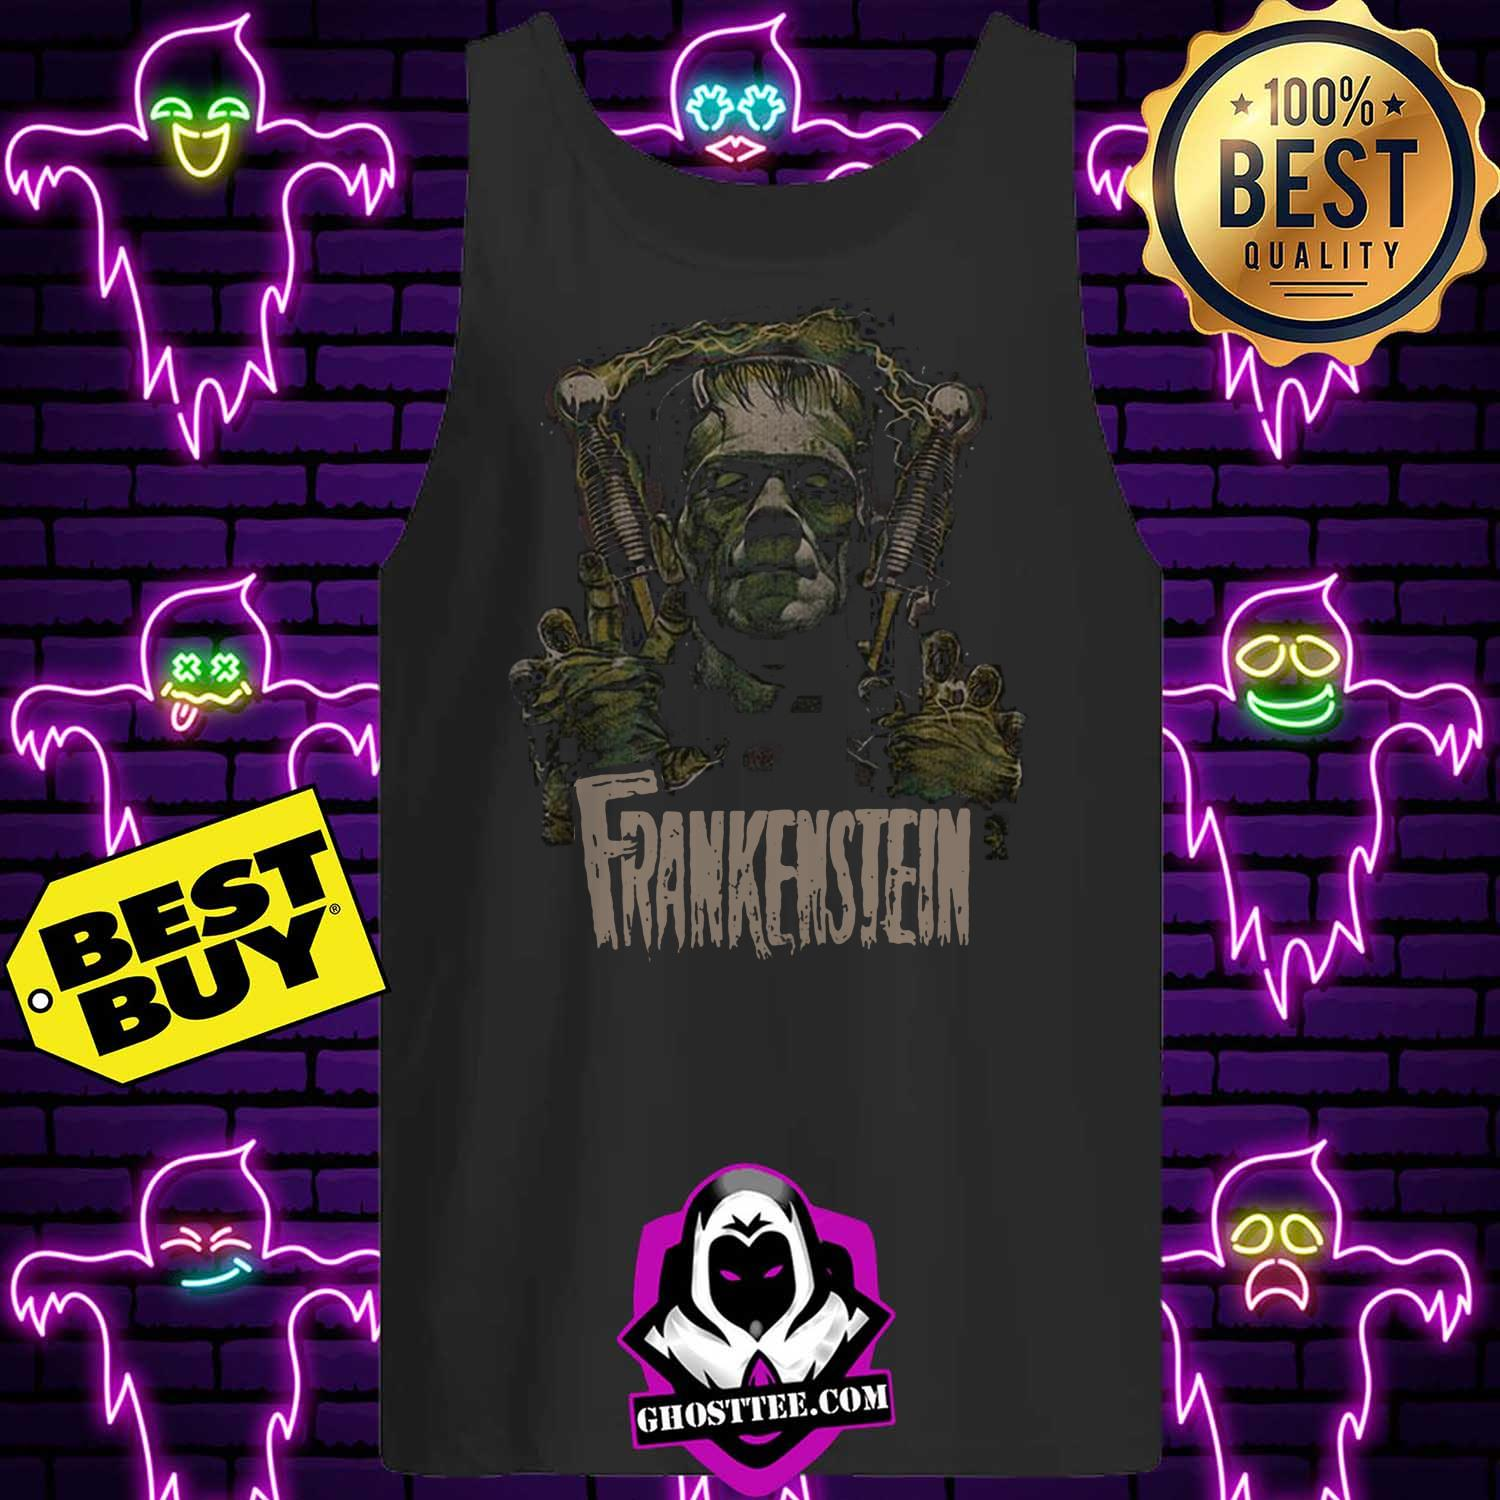 official frankenstein halloween tank top - Official Frankenstein Halloween shirt